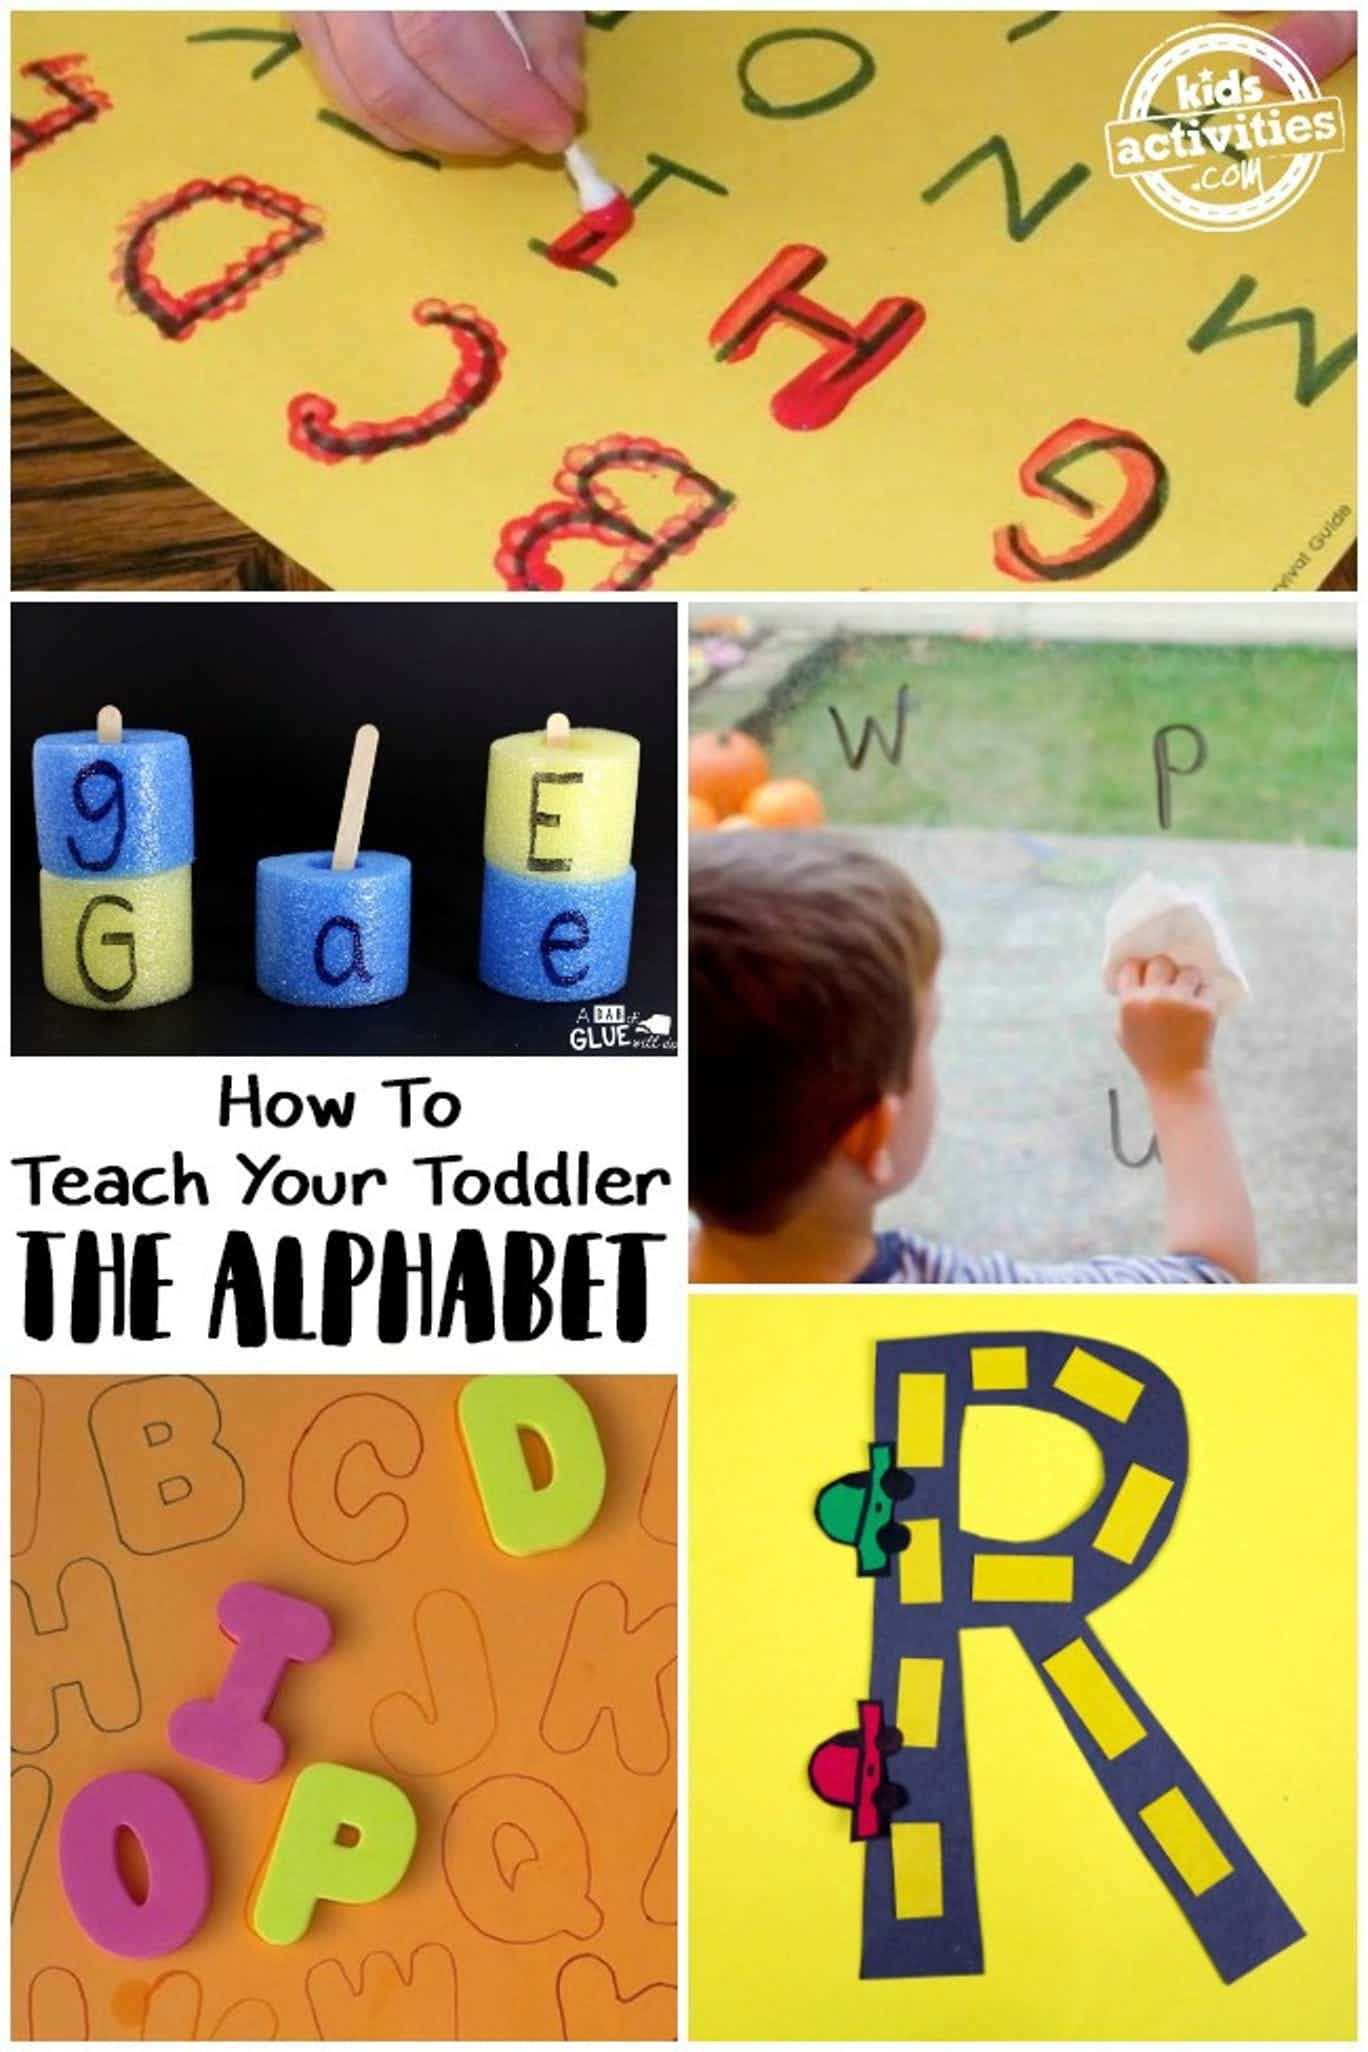 How To Teach Your Toddler The Alphabet In With